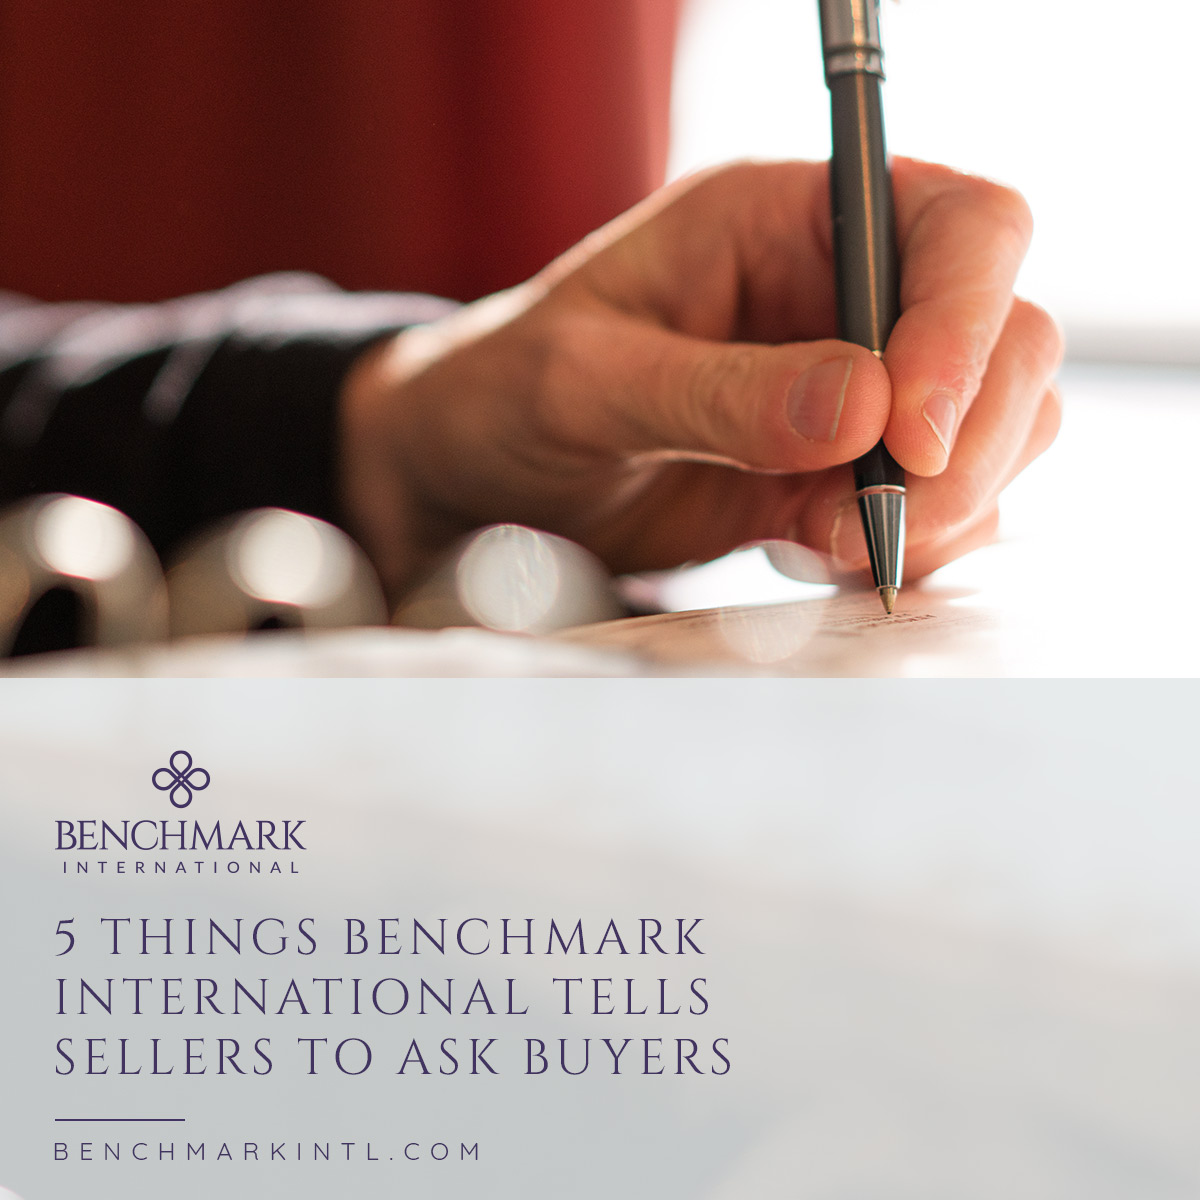 5_Things_Benchmark_International_Tells_Sellers_to_Ask_Buyers_Social